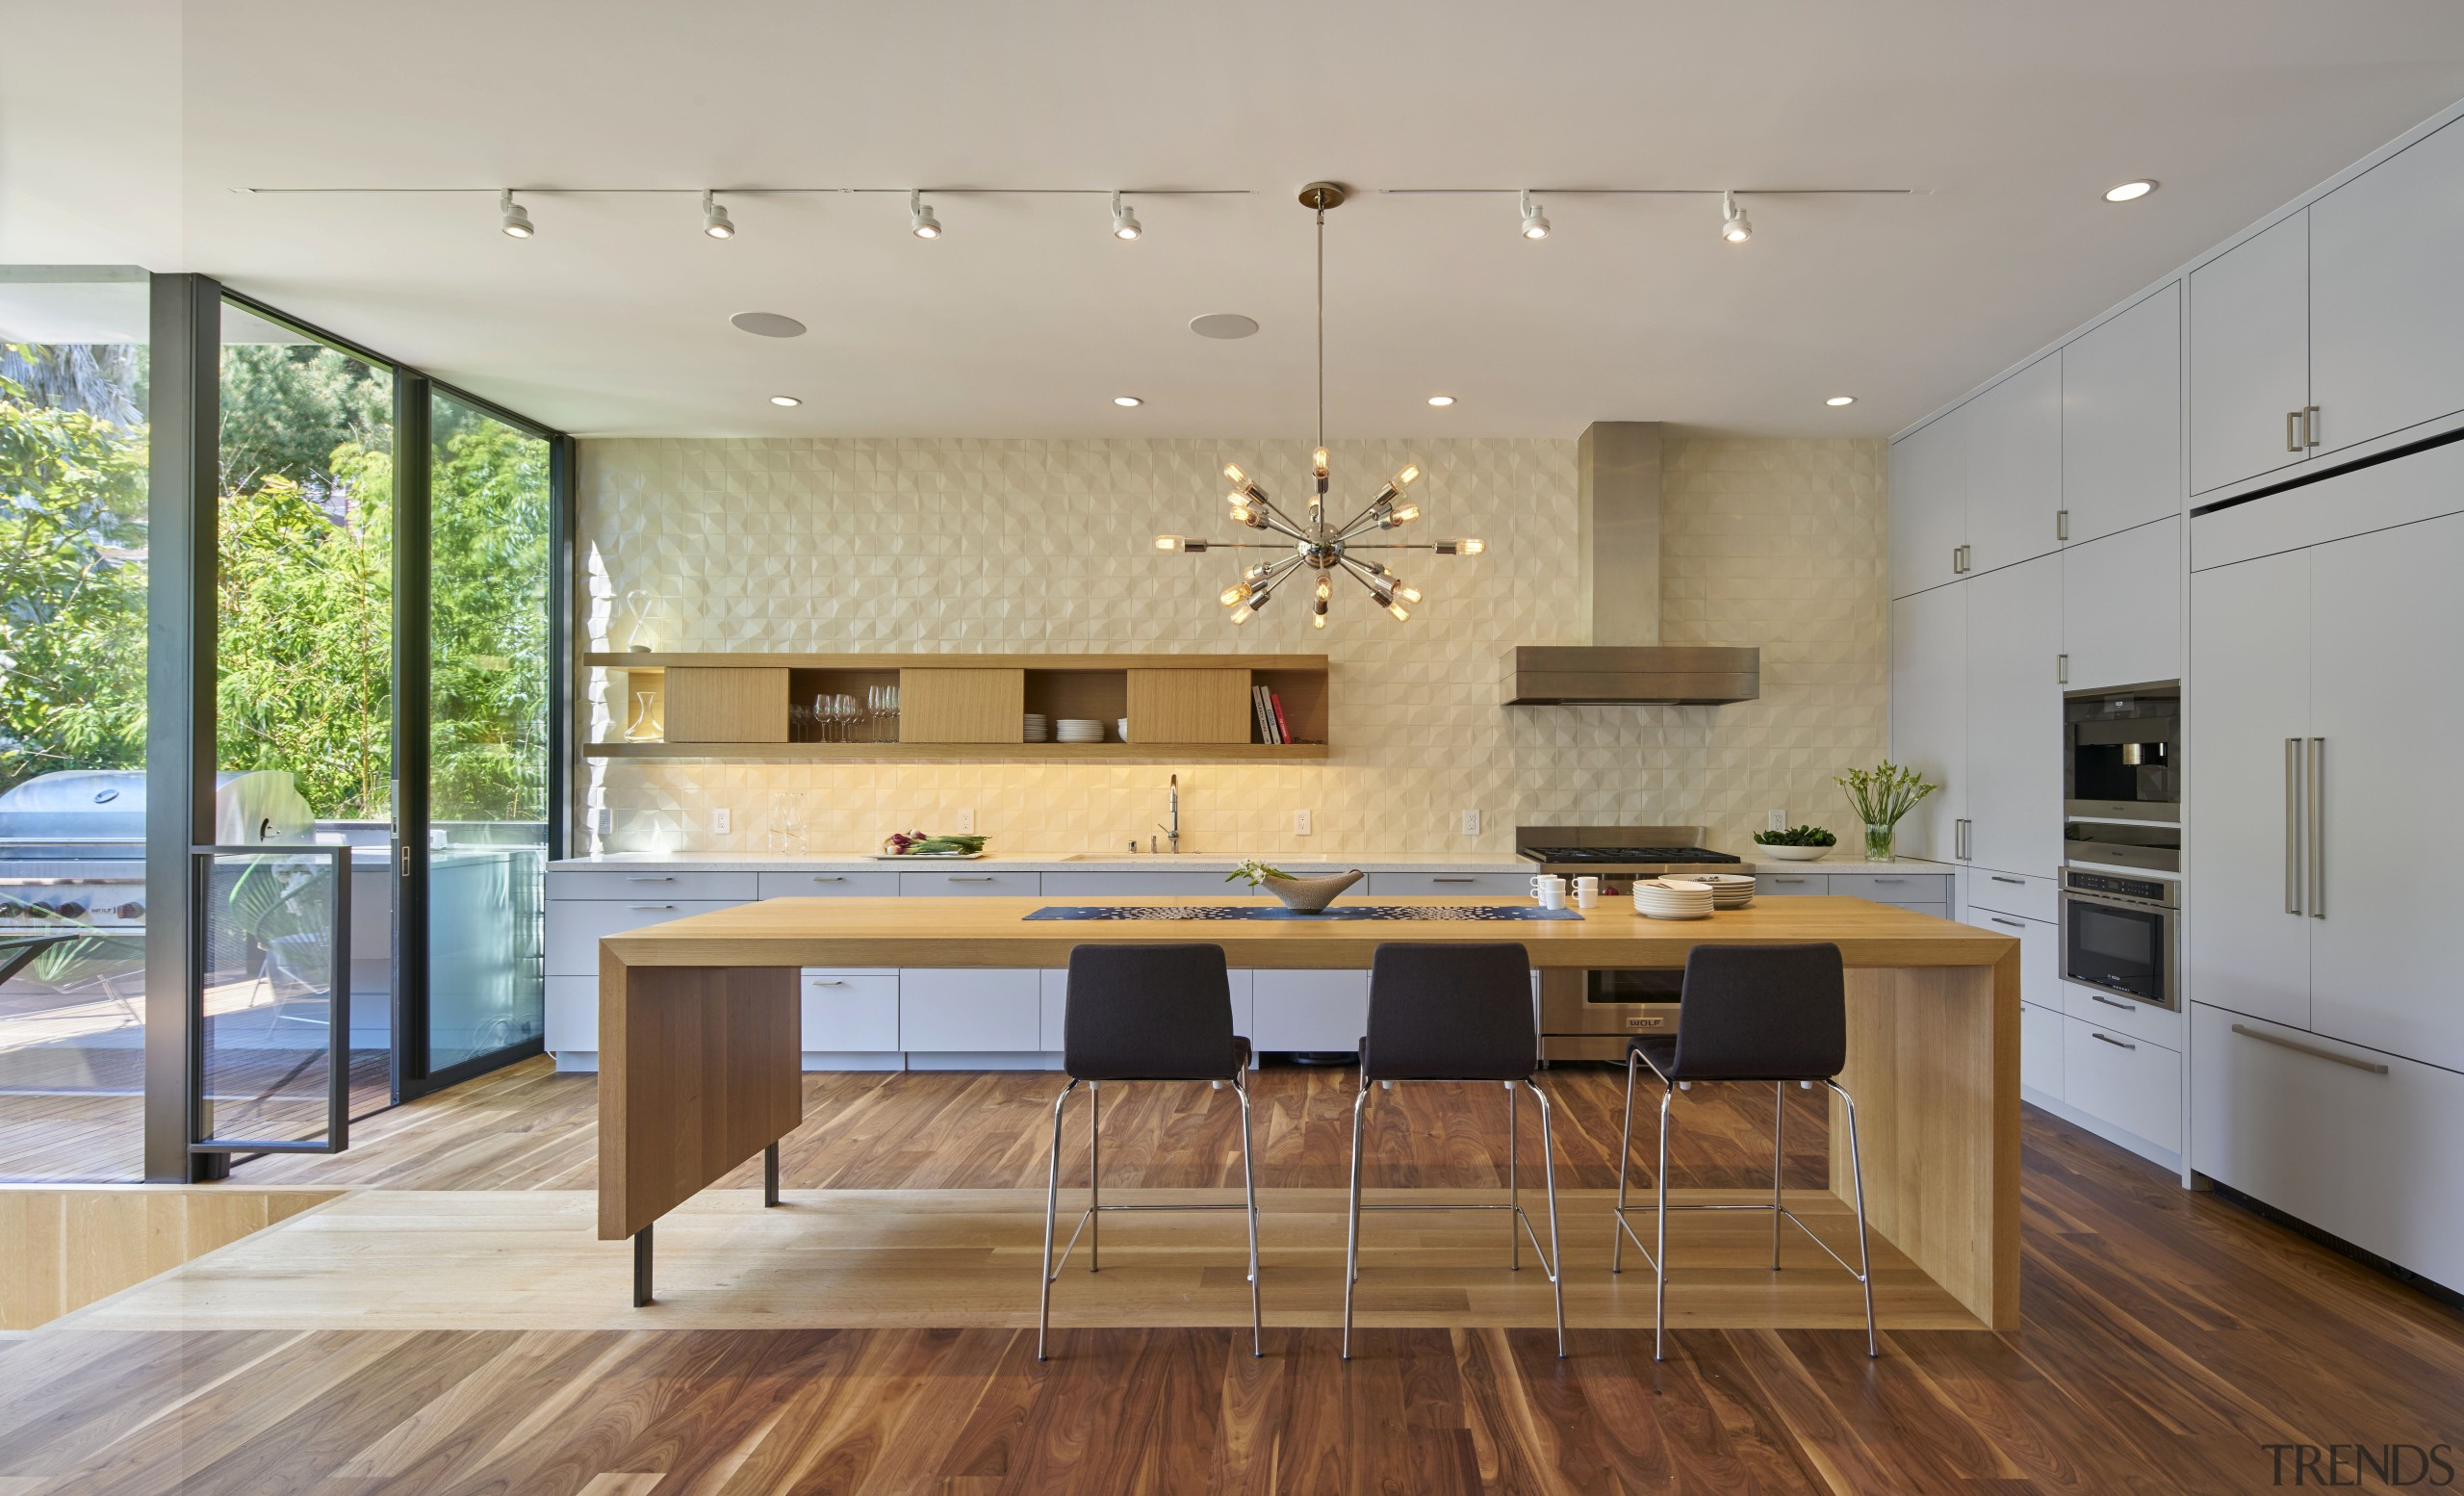 When its also a dining table. That was architecture, ceiling, countertop, floor, flooring, hardwood, house, interior design, interior designer, kitchen, laminate flooring, room, table, wood flooring, gray